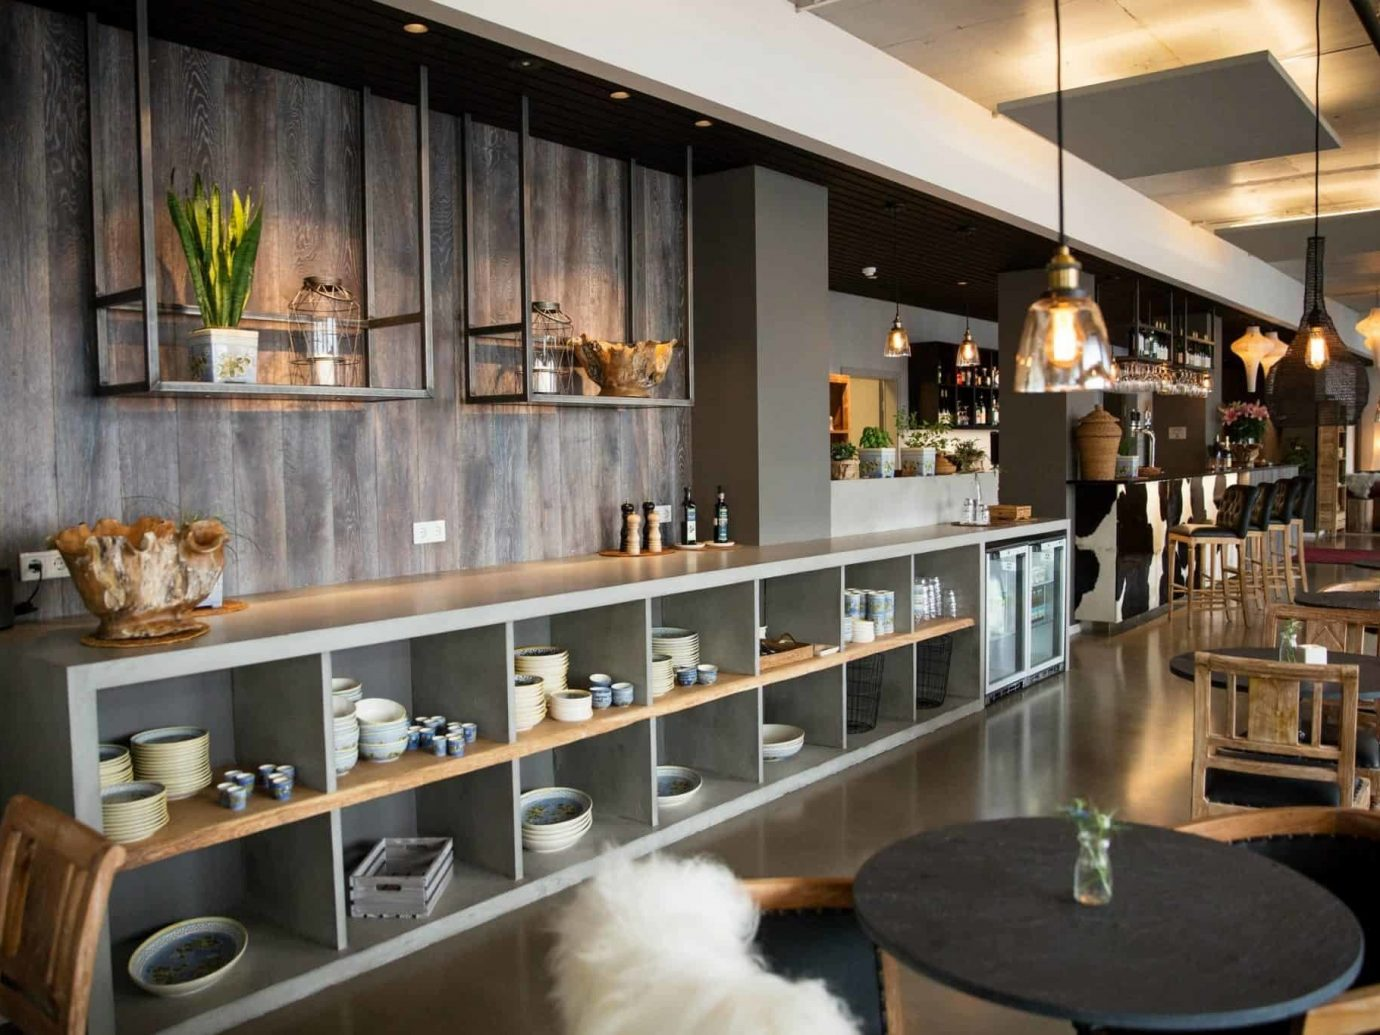 Boutique Hotels Hotels Iceland Reykjavík indoor interior design restaurant café furniture table coffeehouse Bar